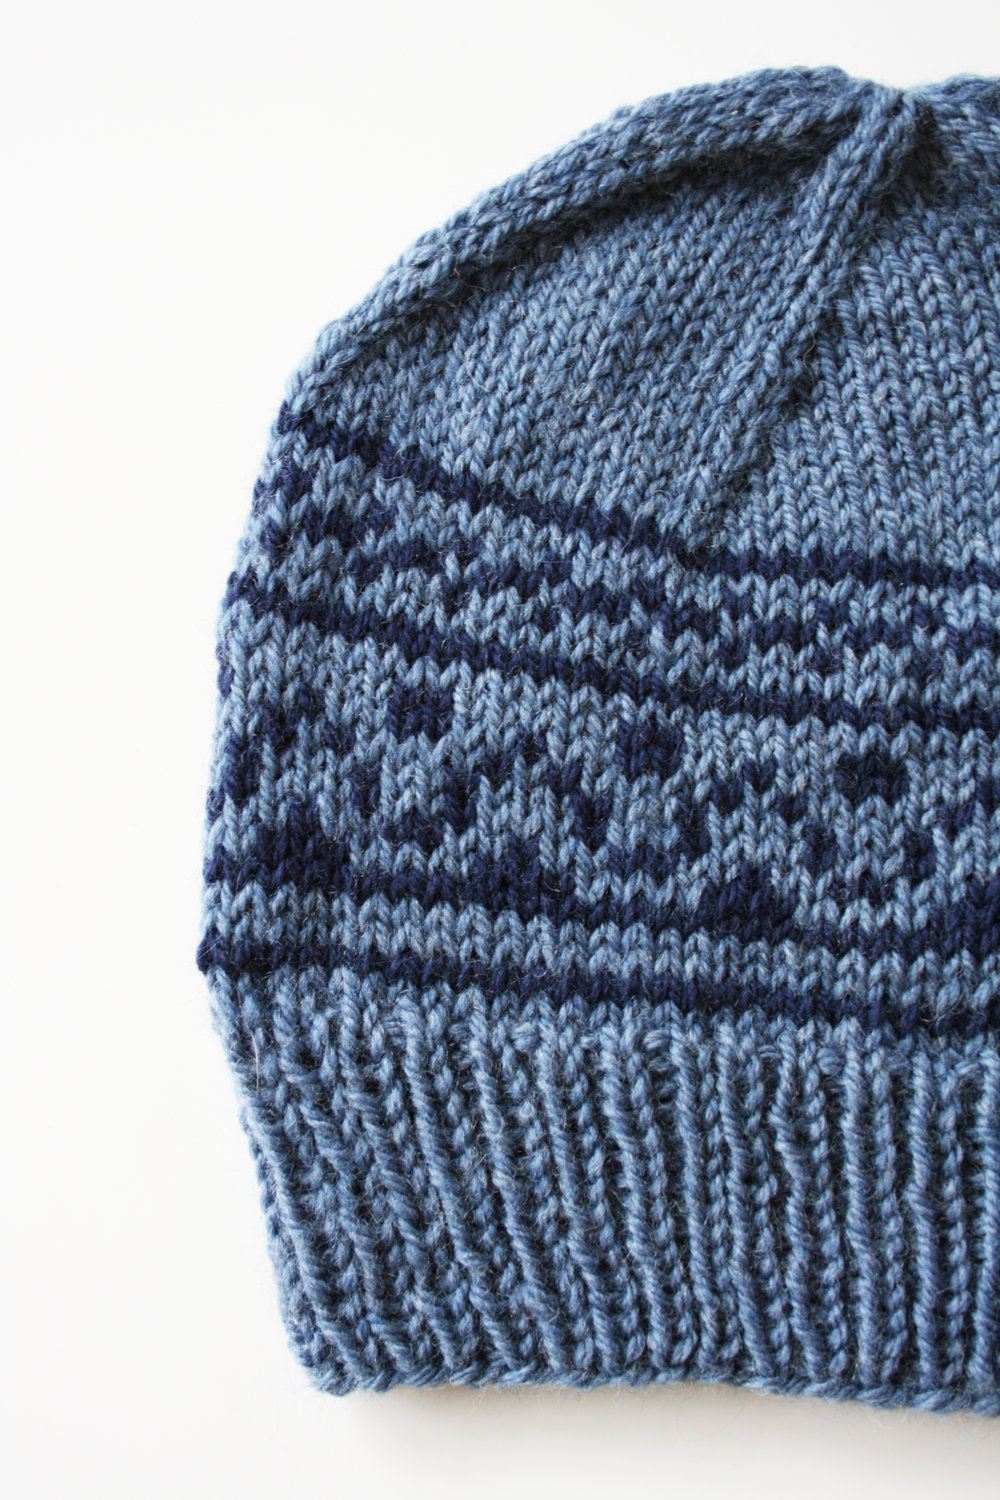 Taiga-Colorwork-Hat-color-jog-tutorial